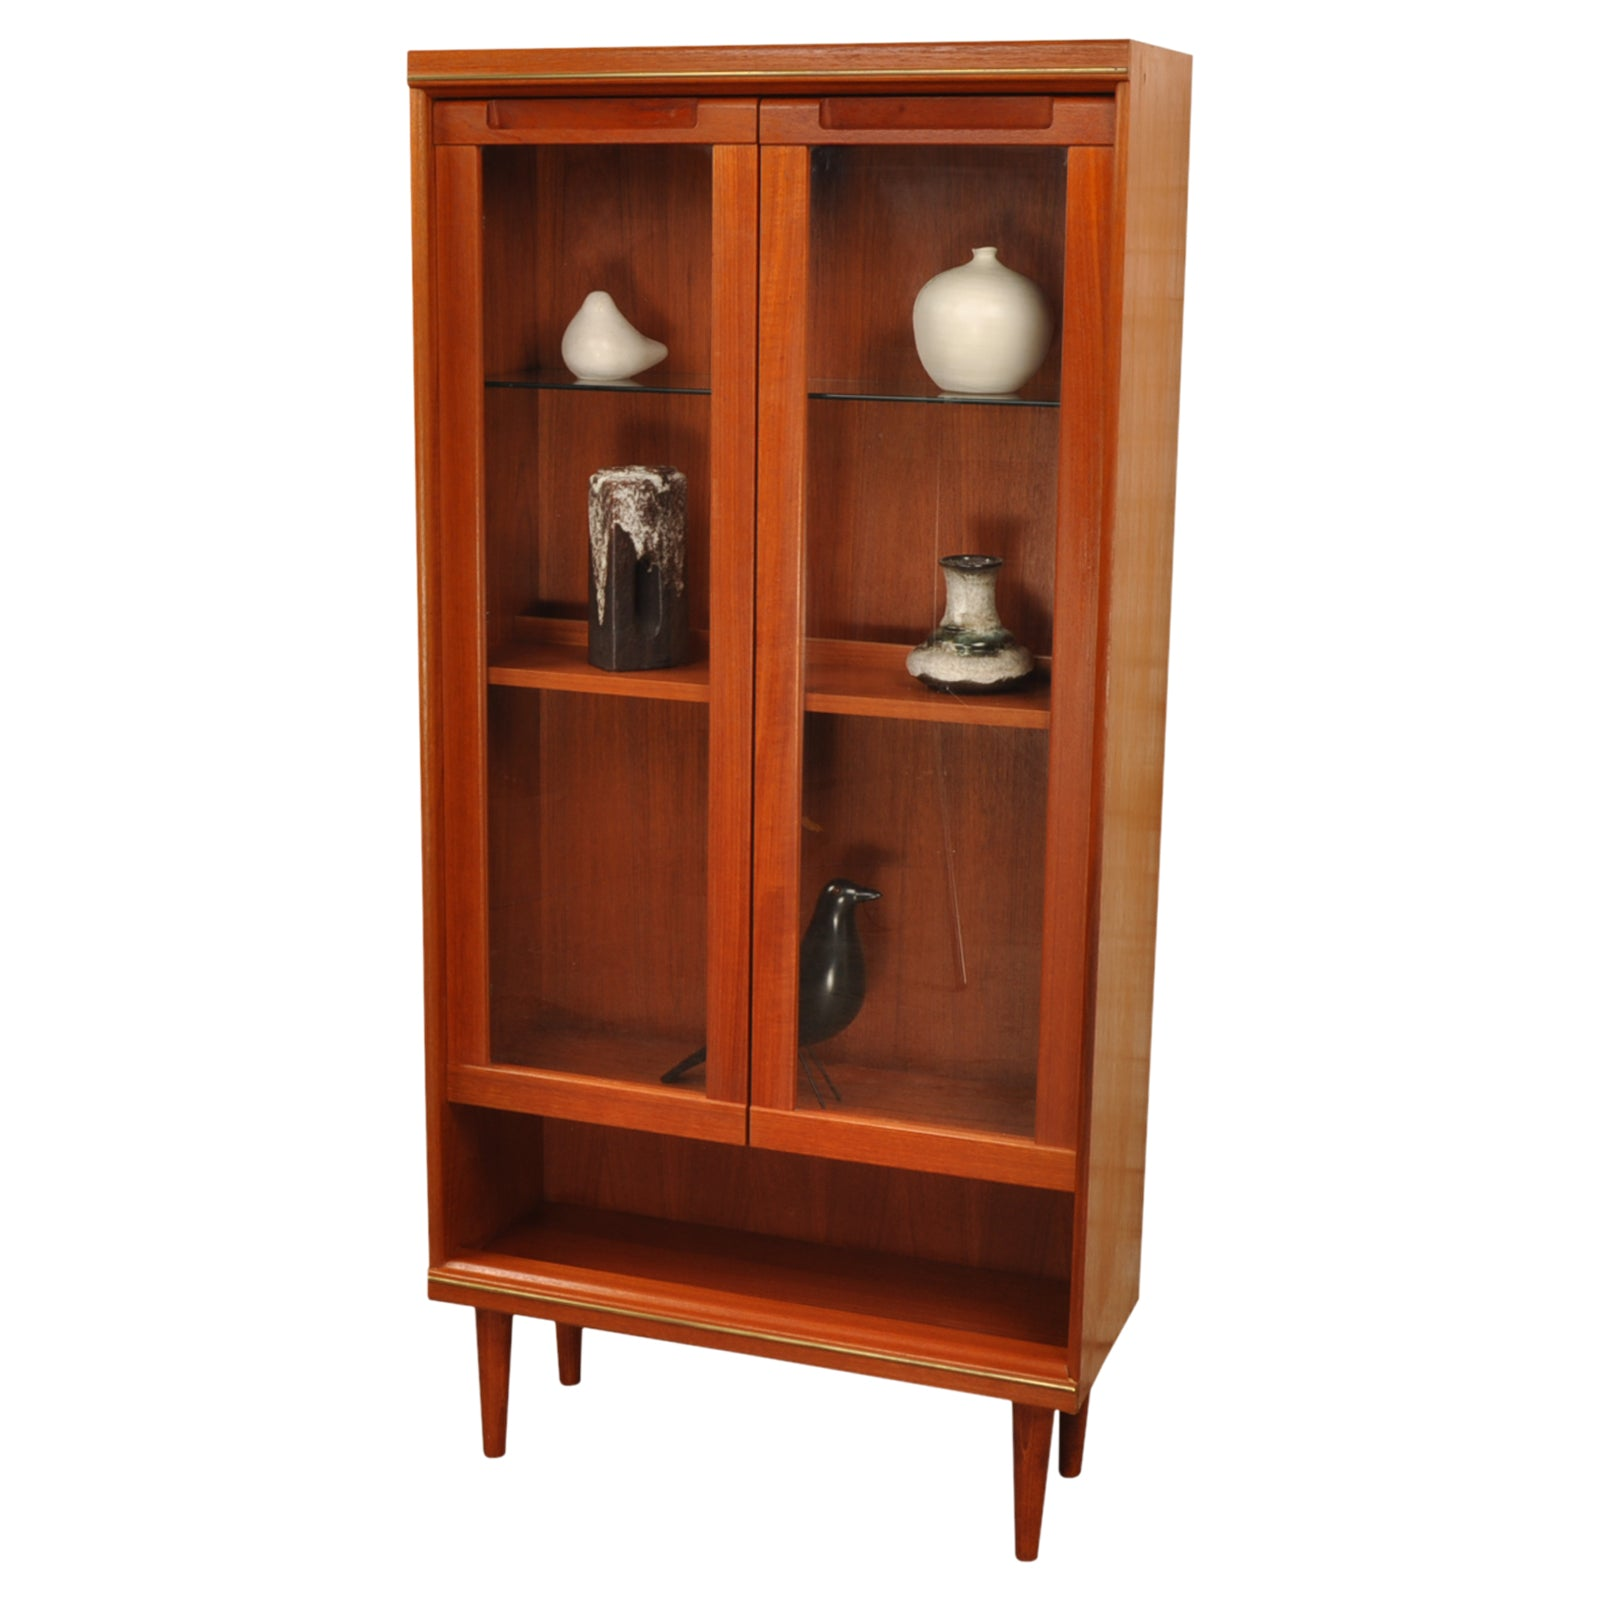 Vintage G Plan Display Cabinet or Bookcase with brass trim.